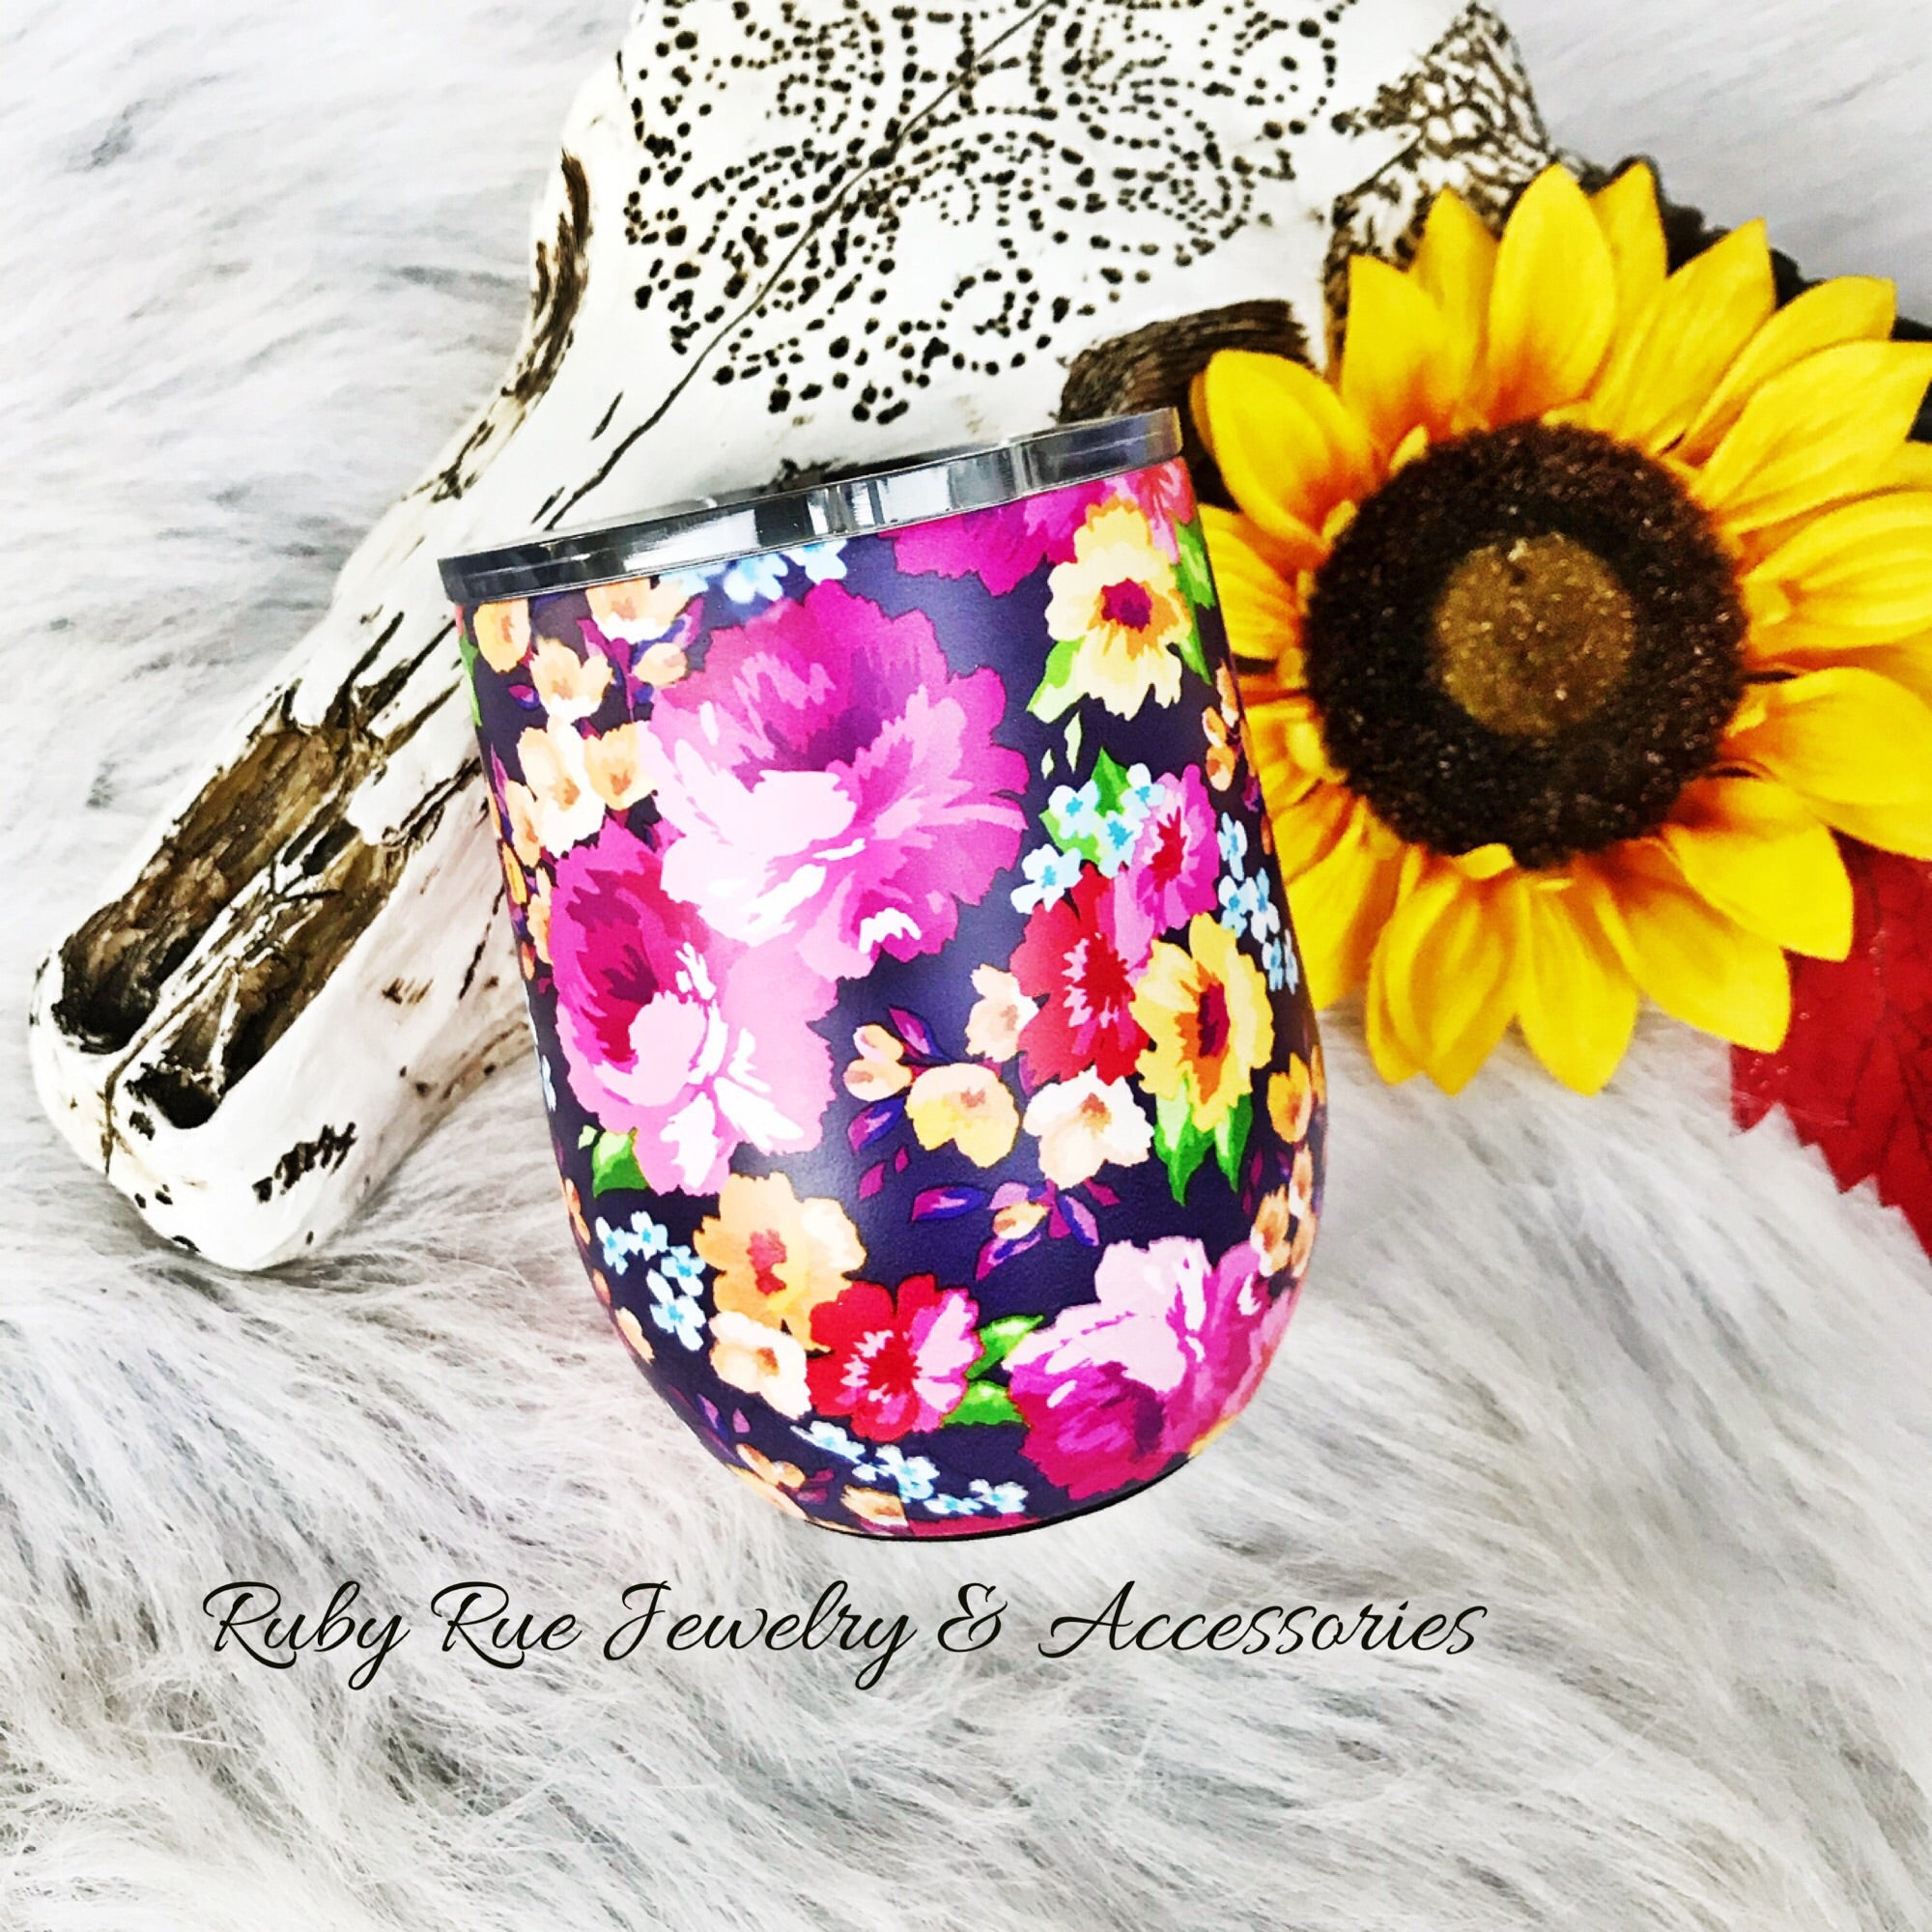 Floral Tumbler - Ruby Rue Jewelry & Accessories